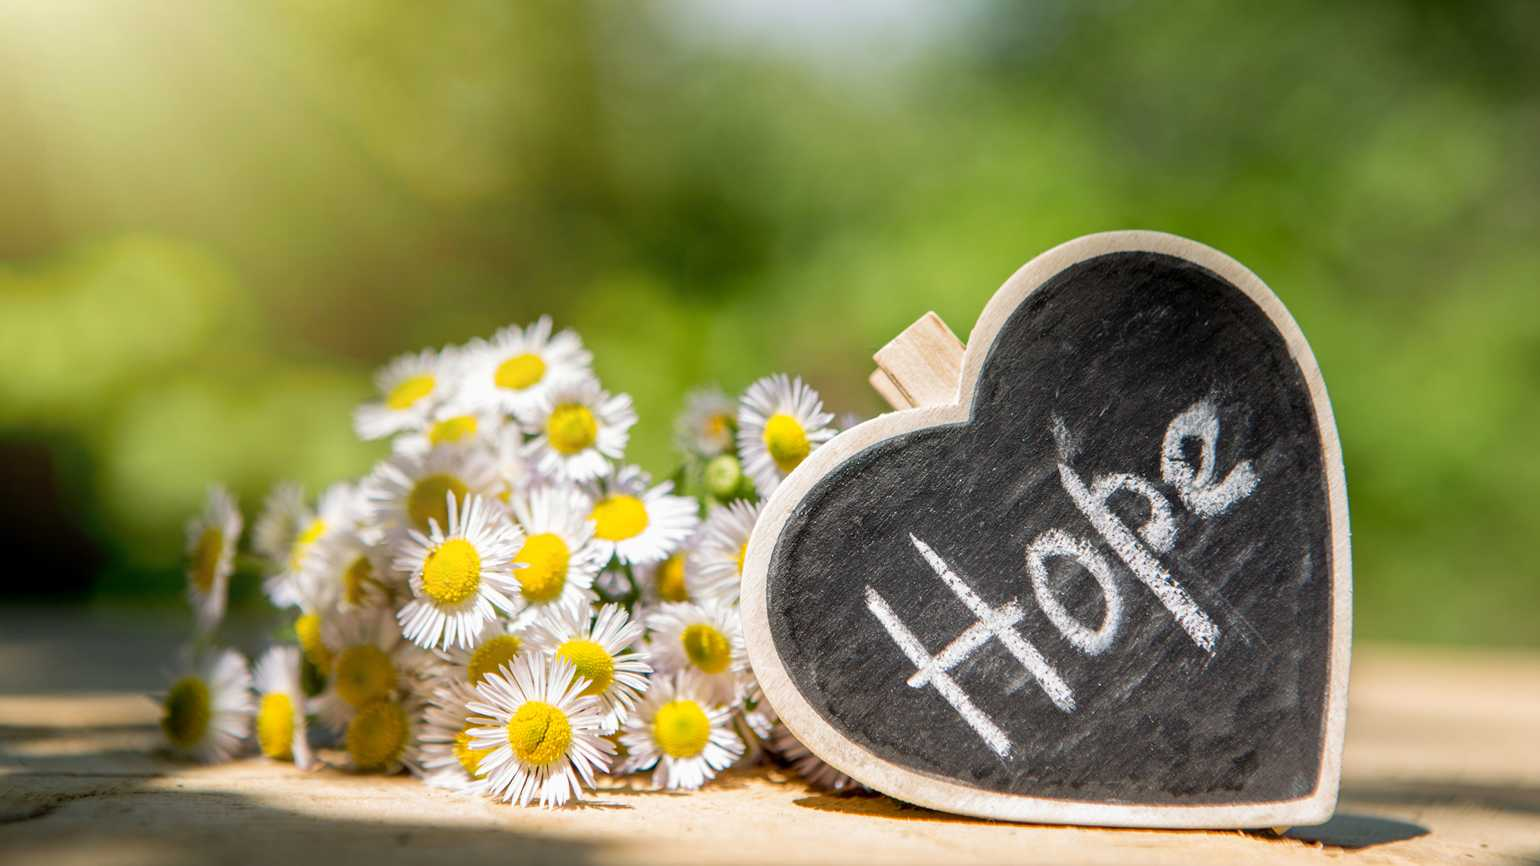 Heart with hope written on it coupled with a bouquet of daisies.